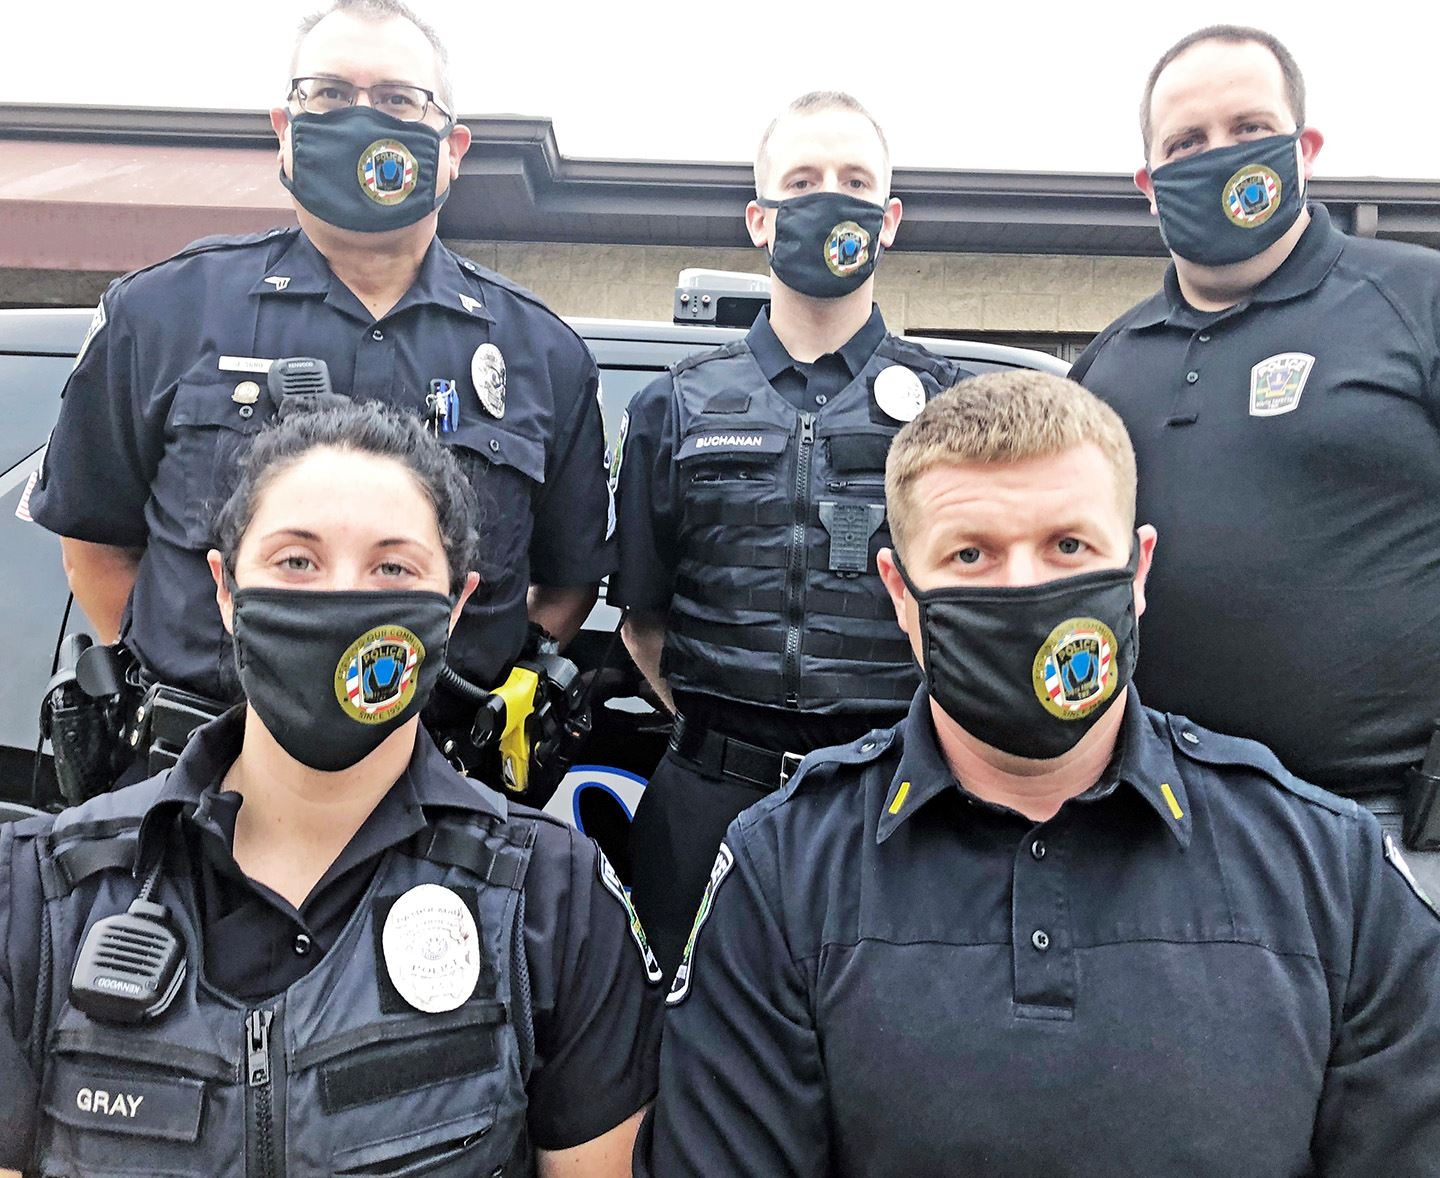 Officers wearing masks